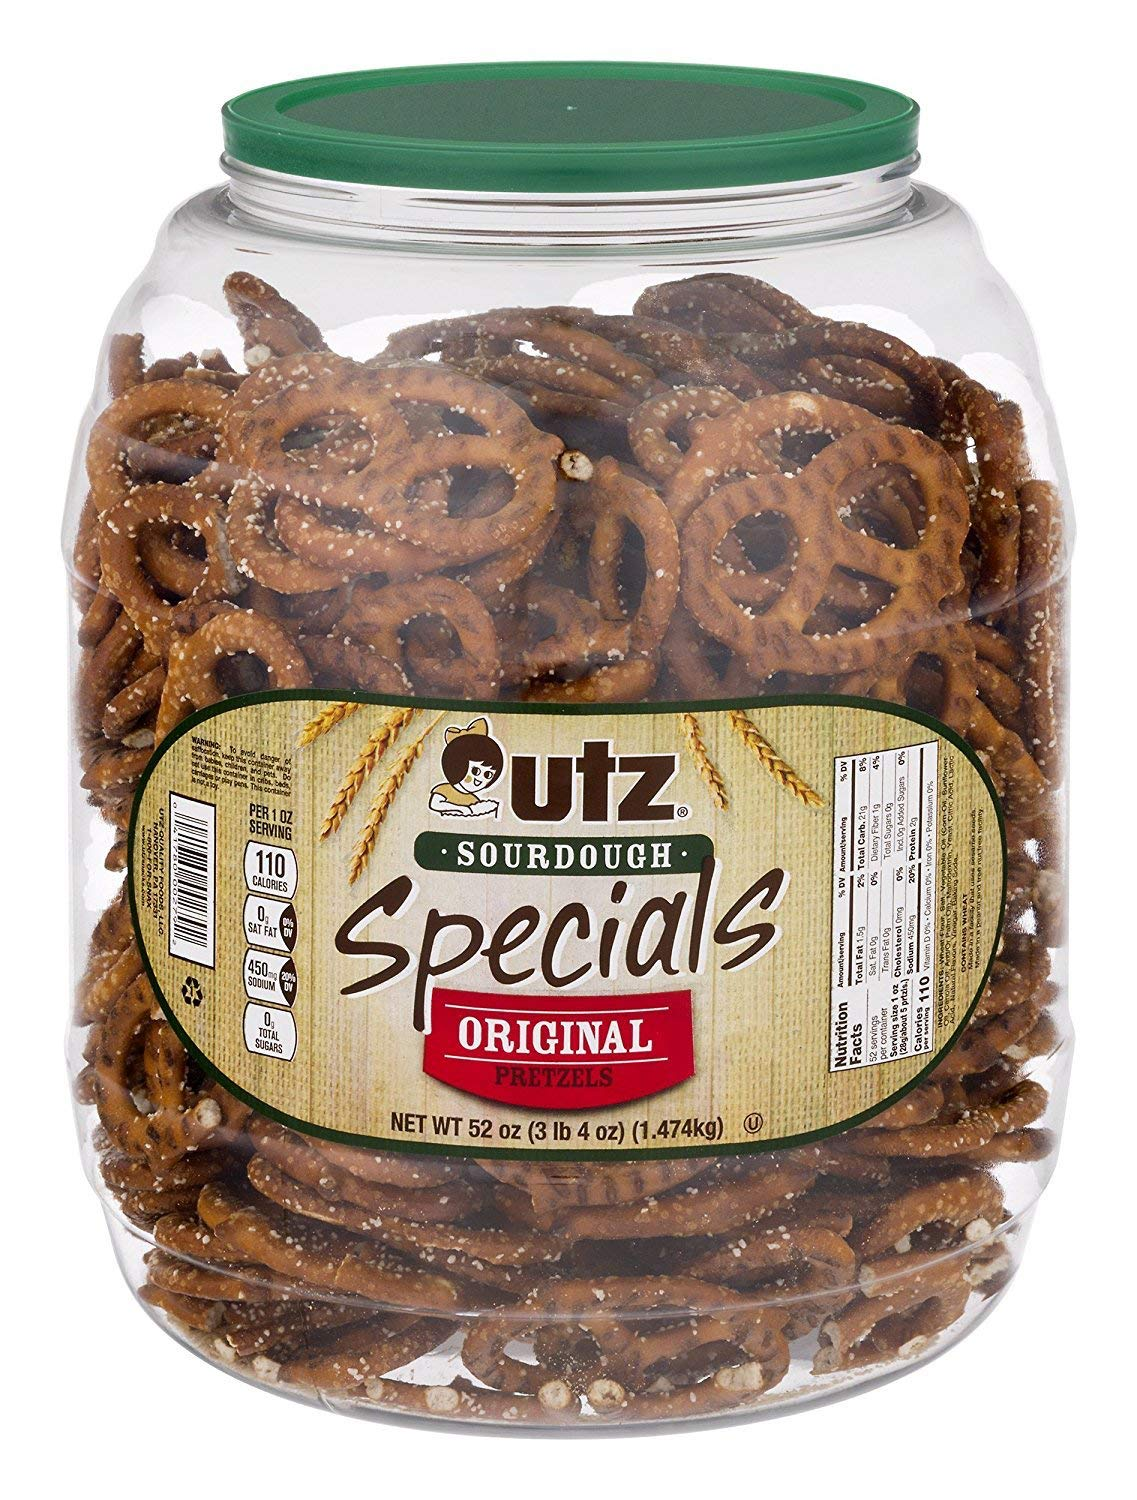 Utz Sourdough Specials Pretzels – Classic Sourdough Pretzel Knot Twist, Perfectly Salted Crunchy Sourdough Pretzel with Zero Cholesterol per Serving, 52 oz. Barrel